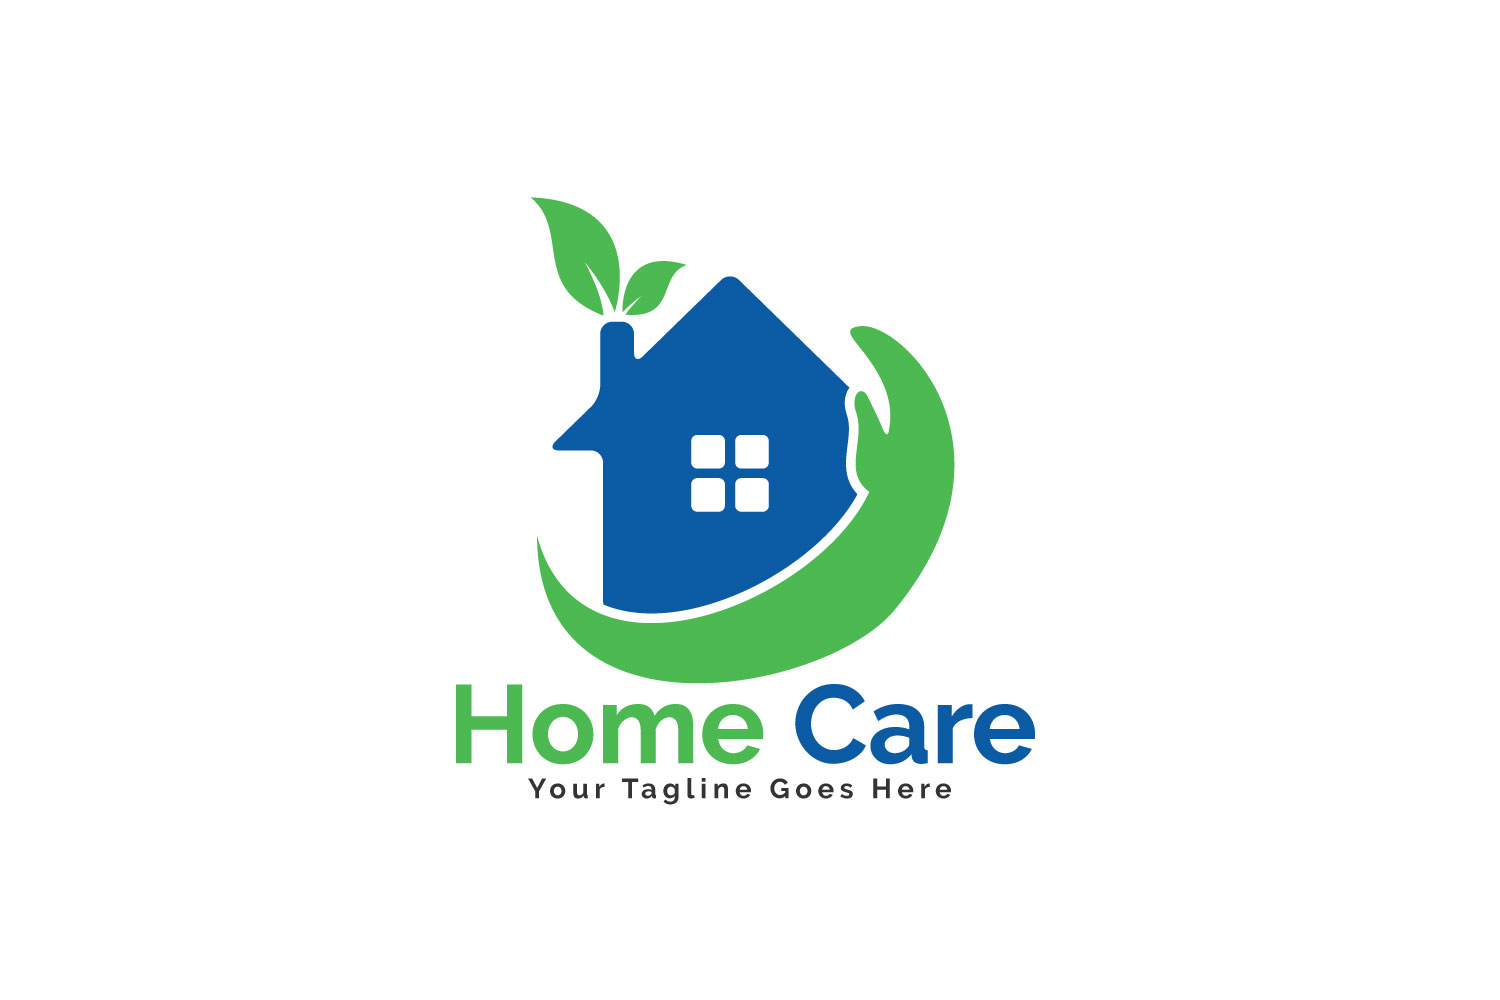 Home Care Logo Design House With Hand Vector Example Image 1